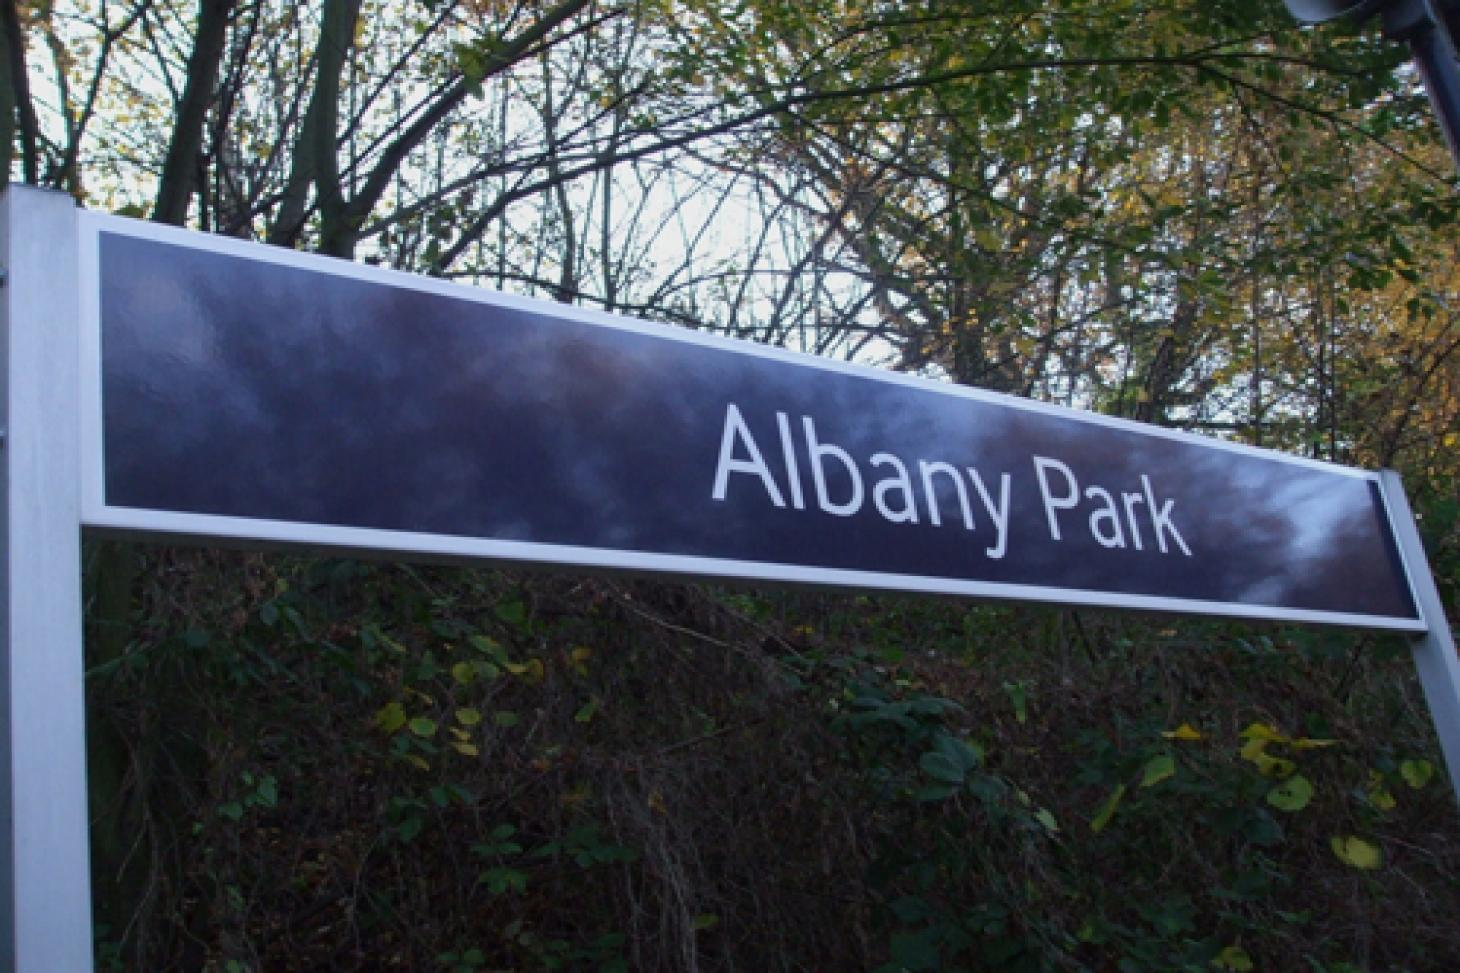 Albany Park 11 a side | Grass football pitch